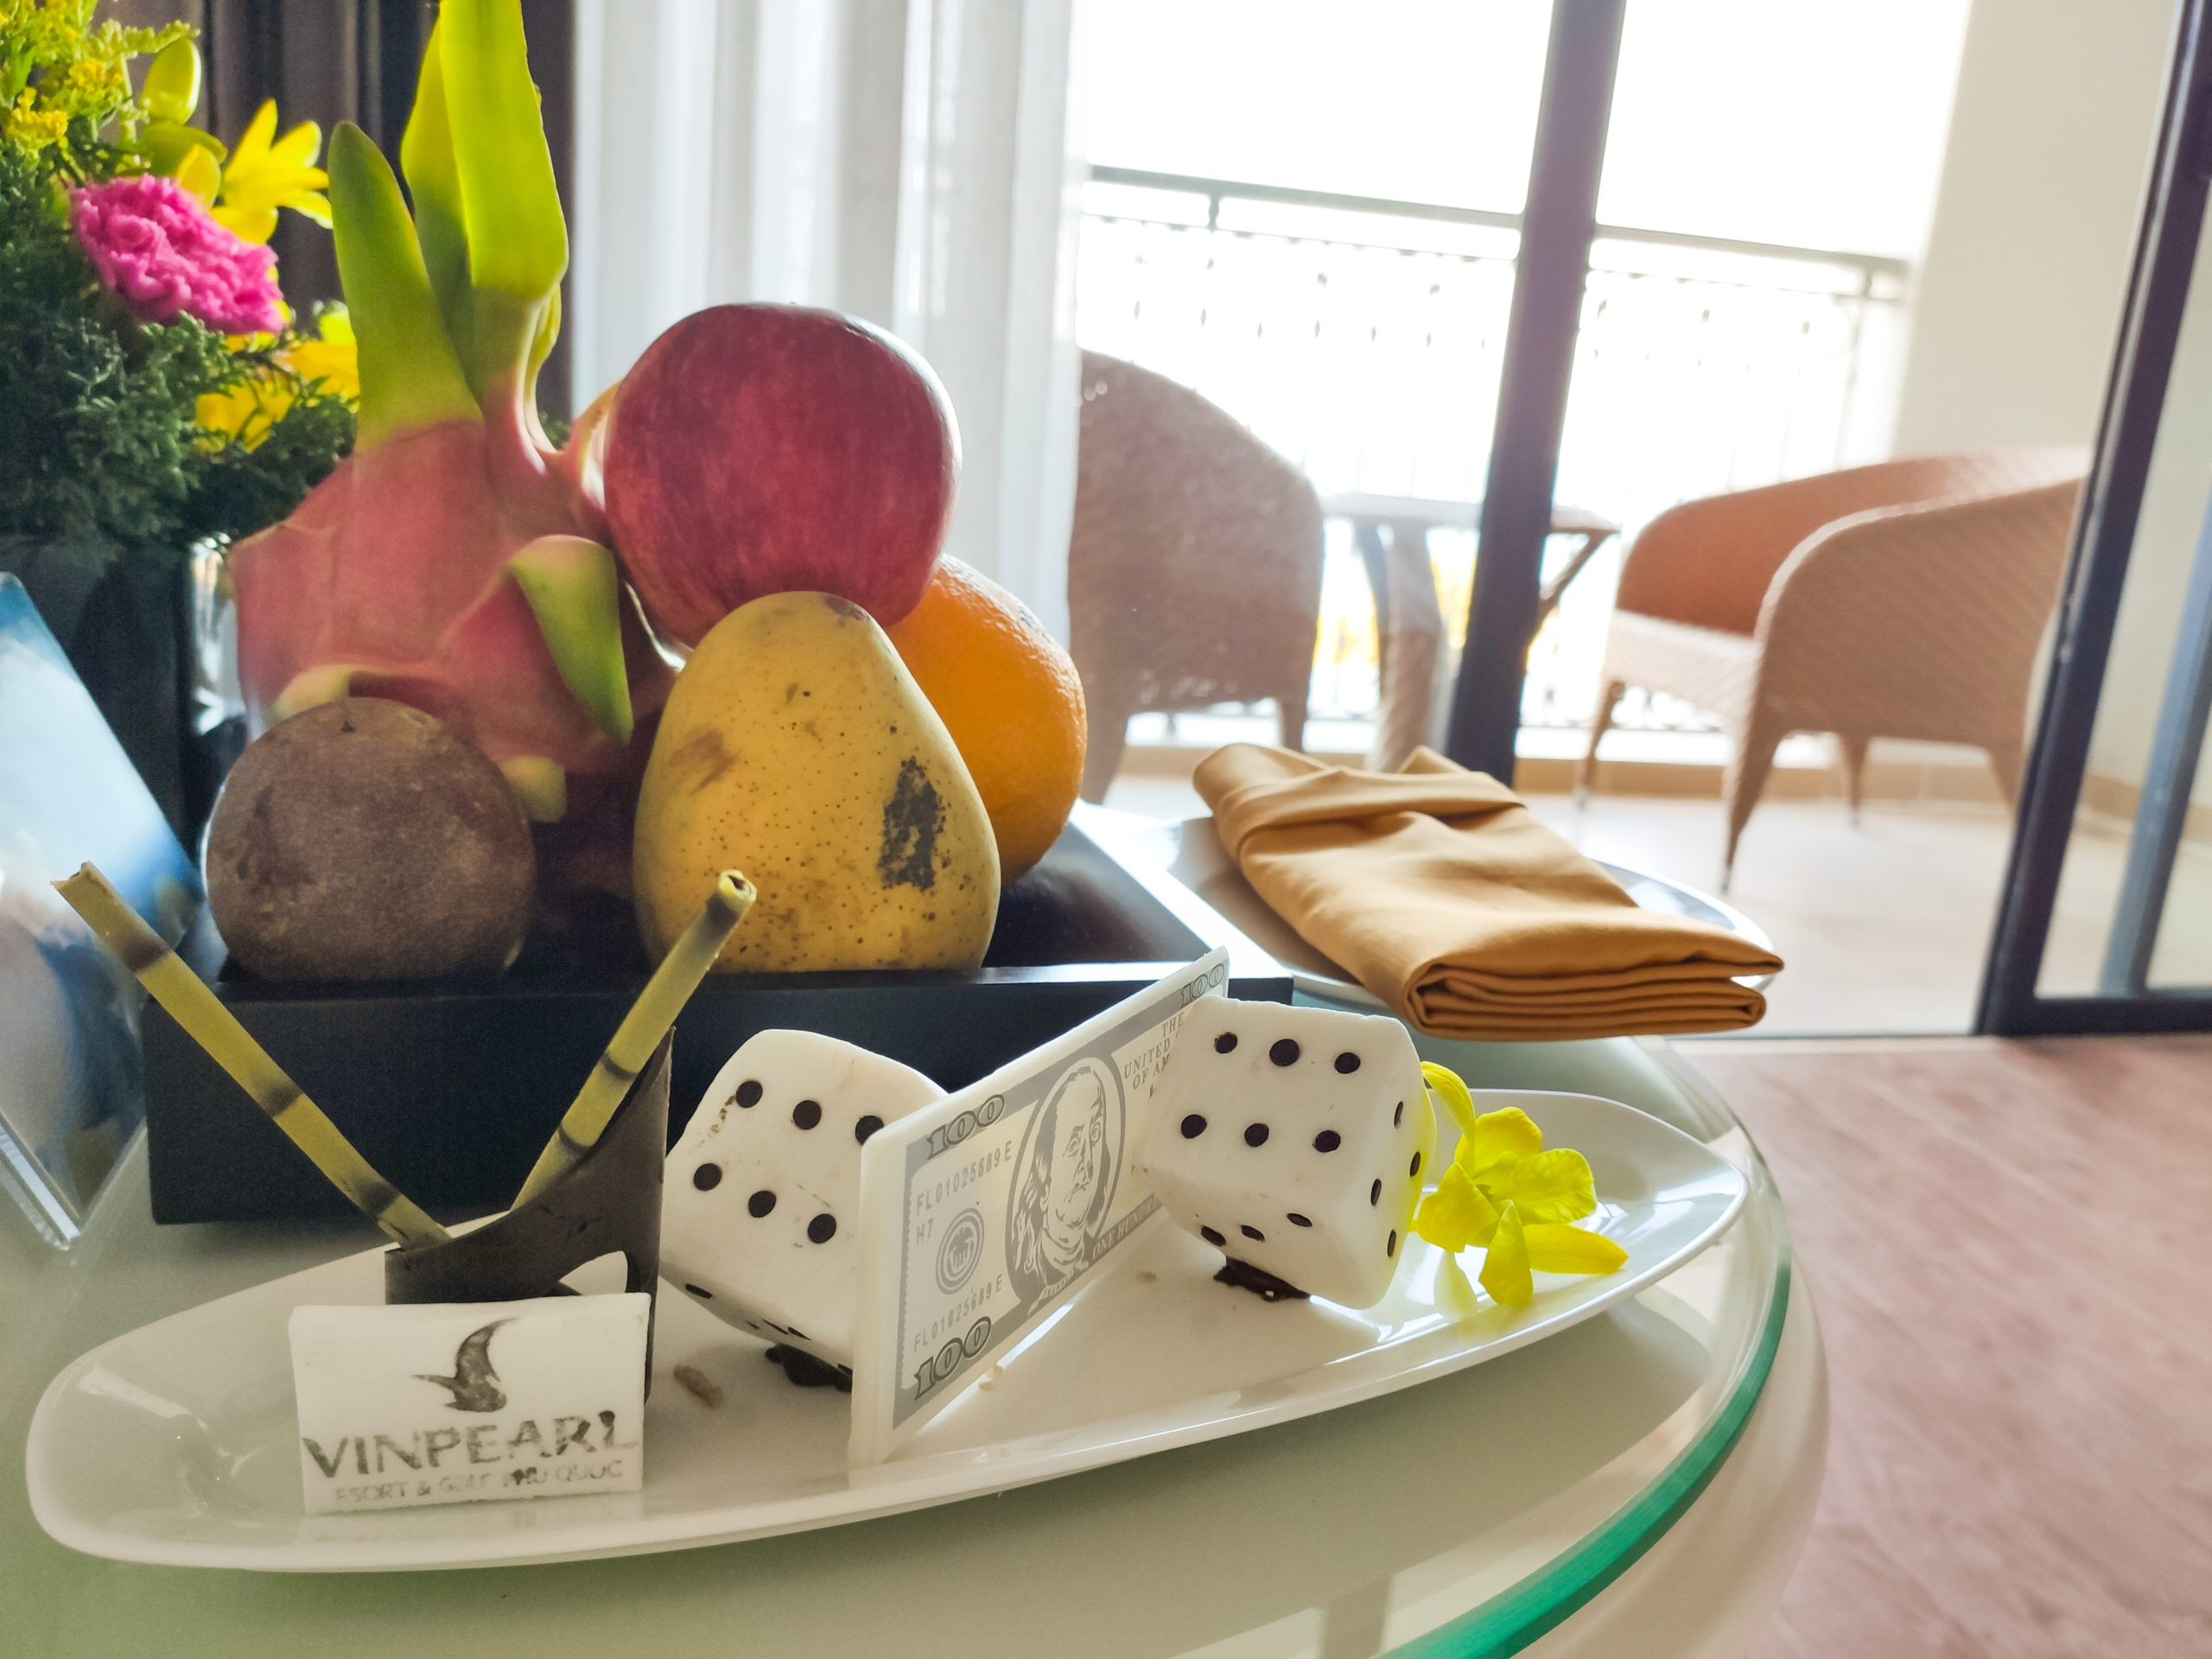 Room amenities at Vinpearl Resort & Golf Phu Quoc